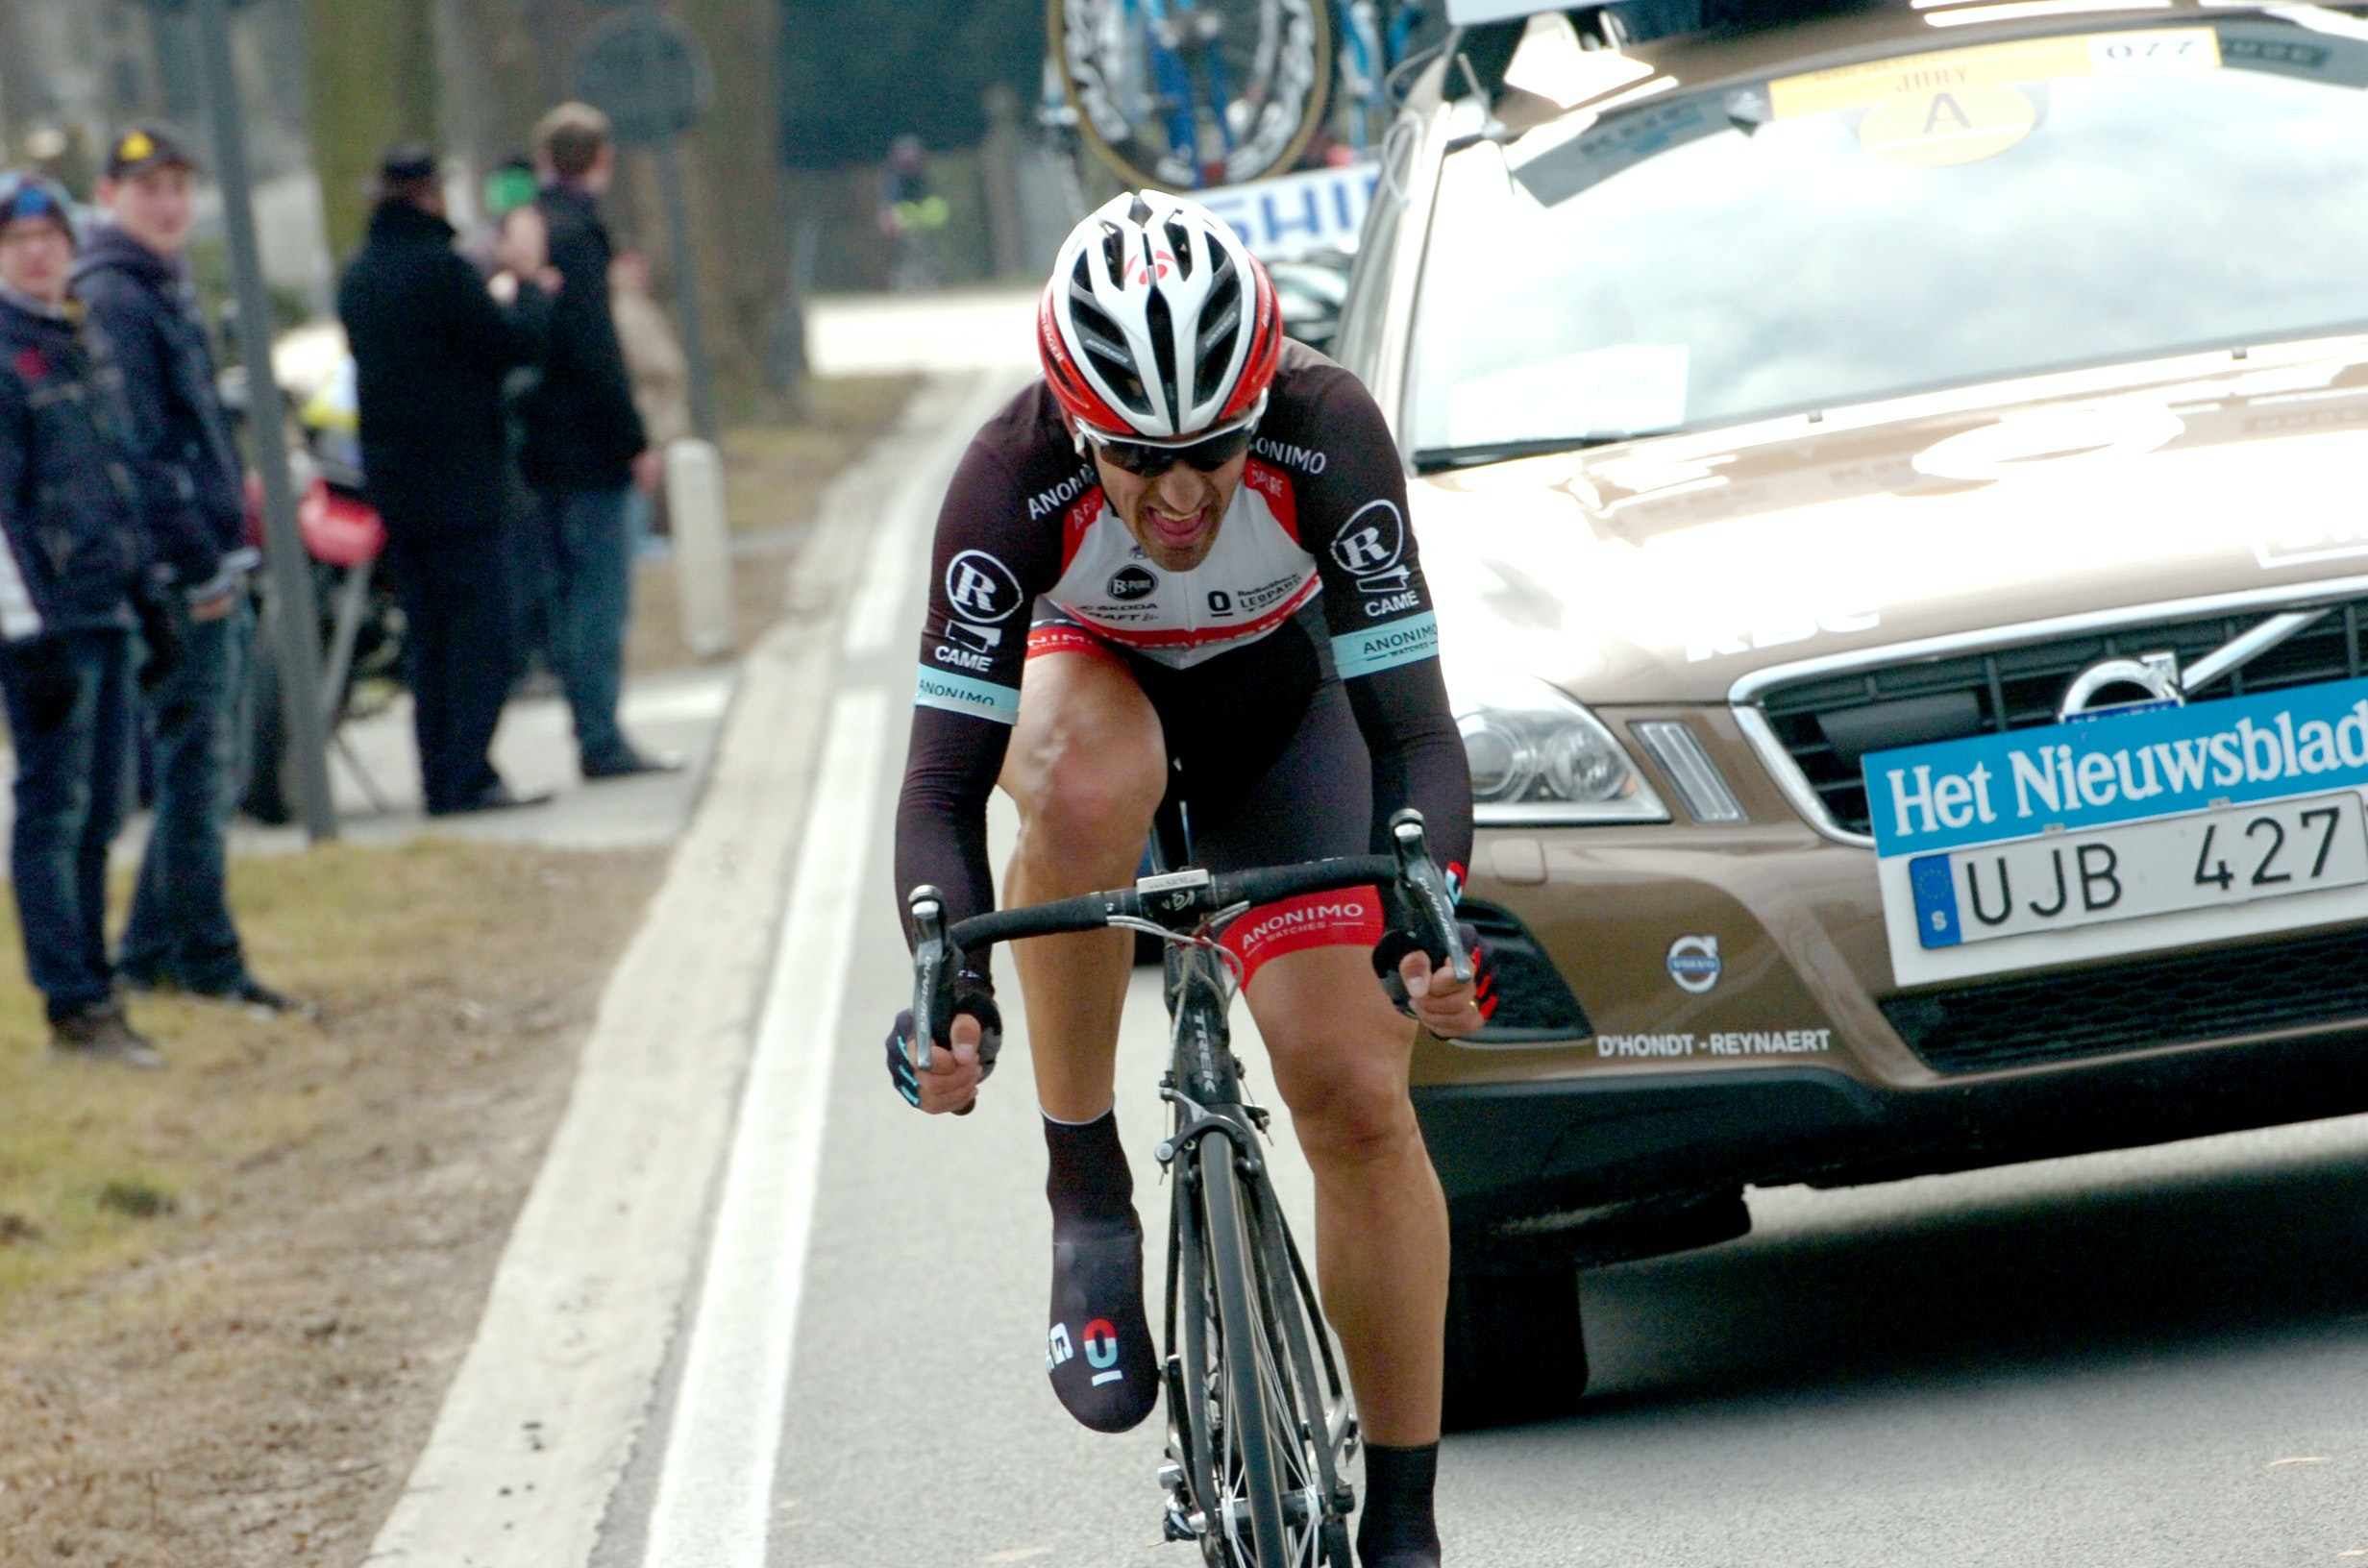 Fabian Cancellara, Tour of Flanders, attack, drop, Radioshack-Leopard, Trek